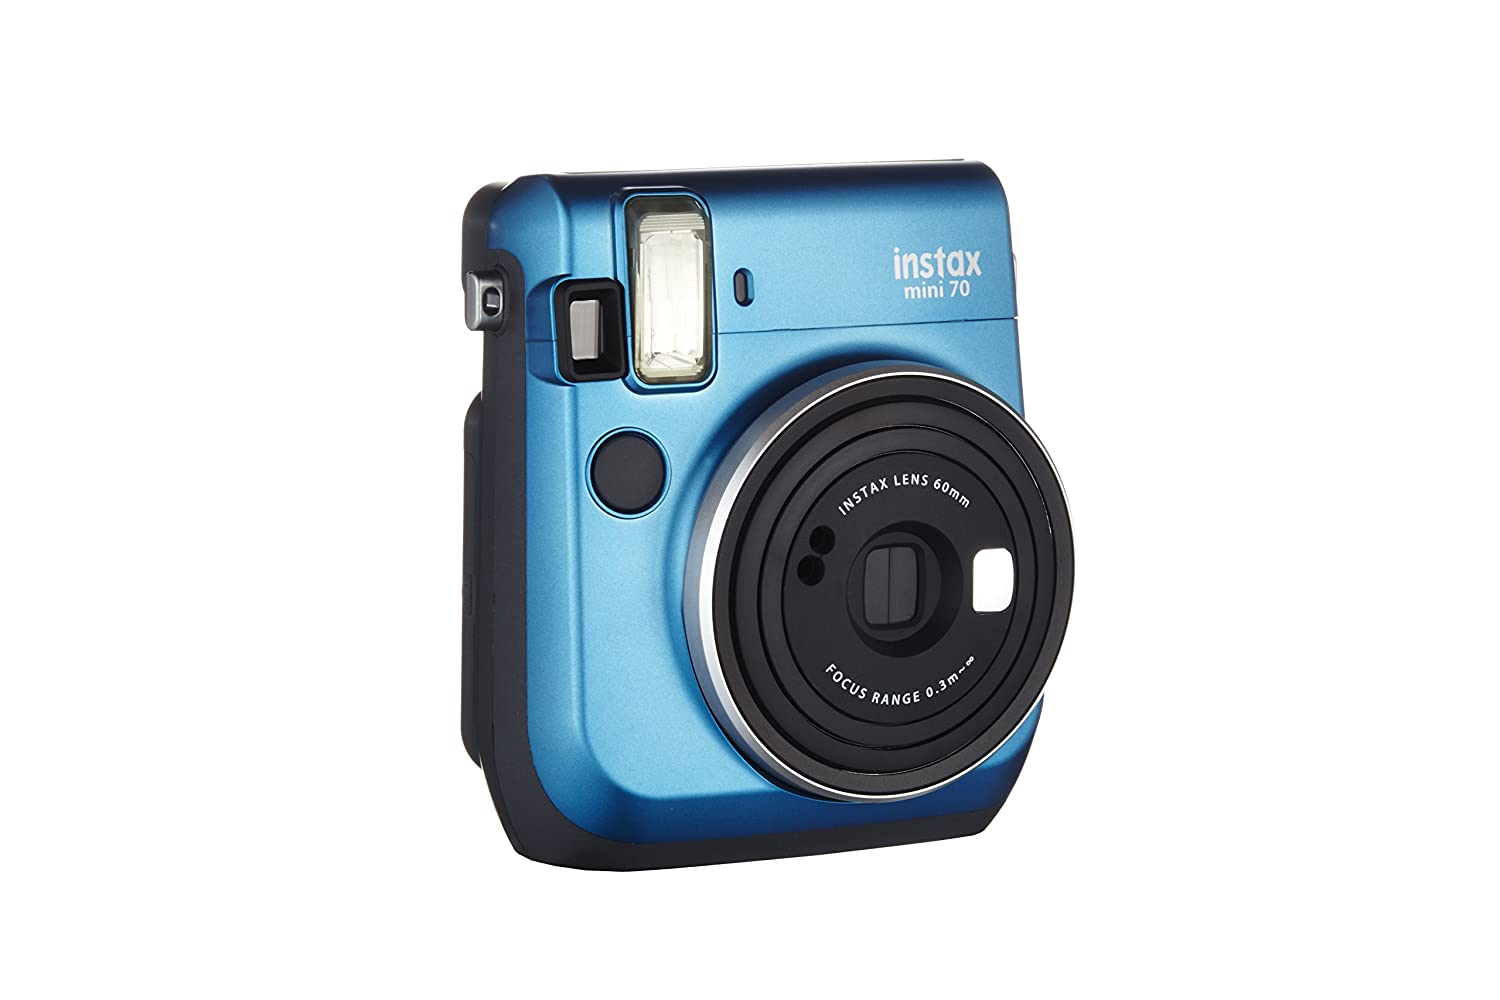 Today only: $93.99(was $114.65)Fujifilm Instax Mini 70 Camera (Island Blue)